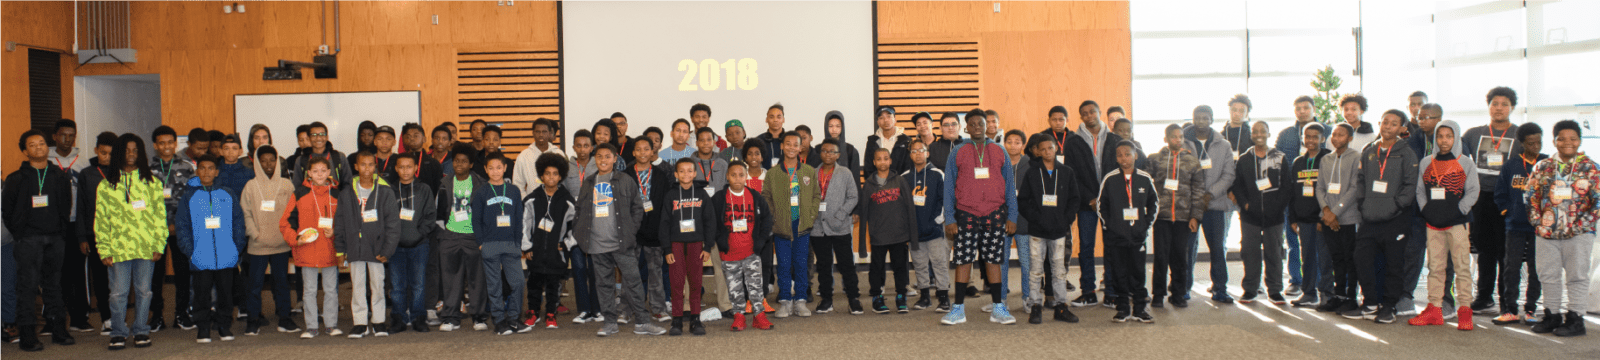 Brothers Code 2018